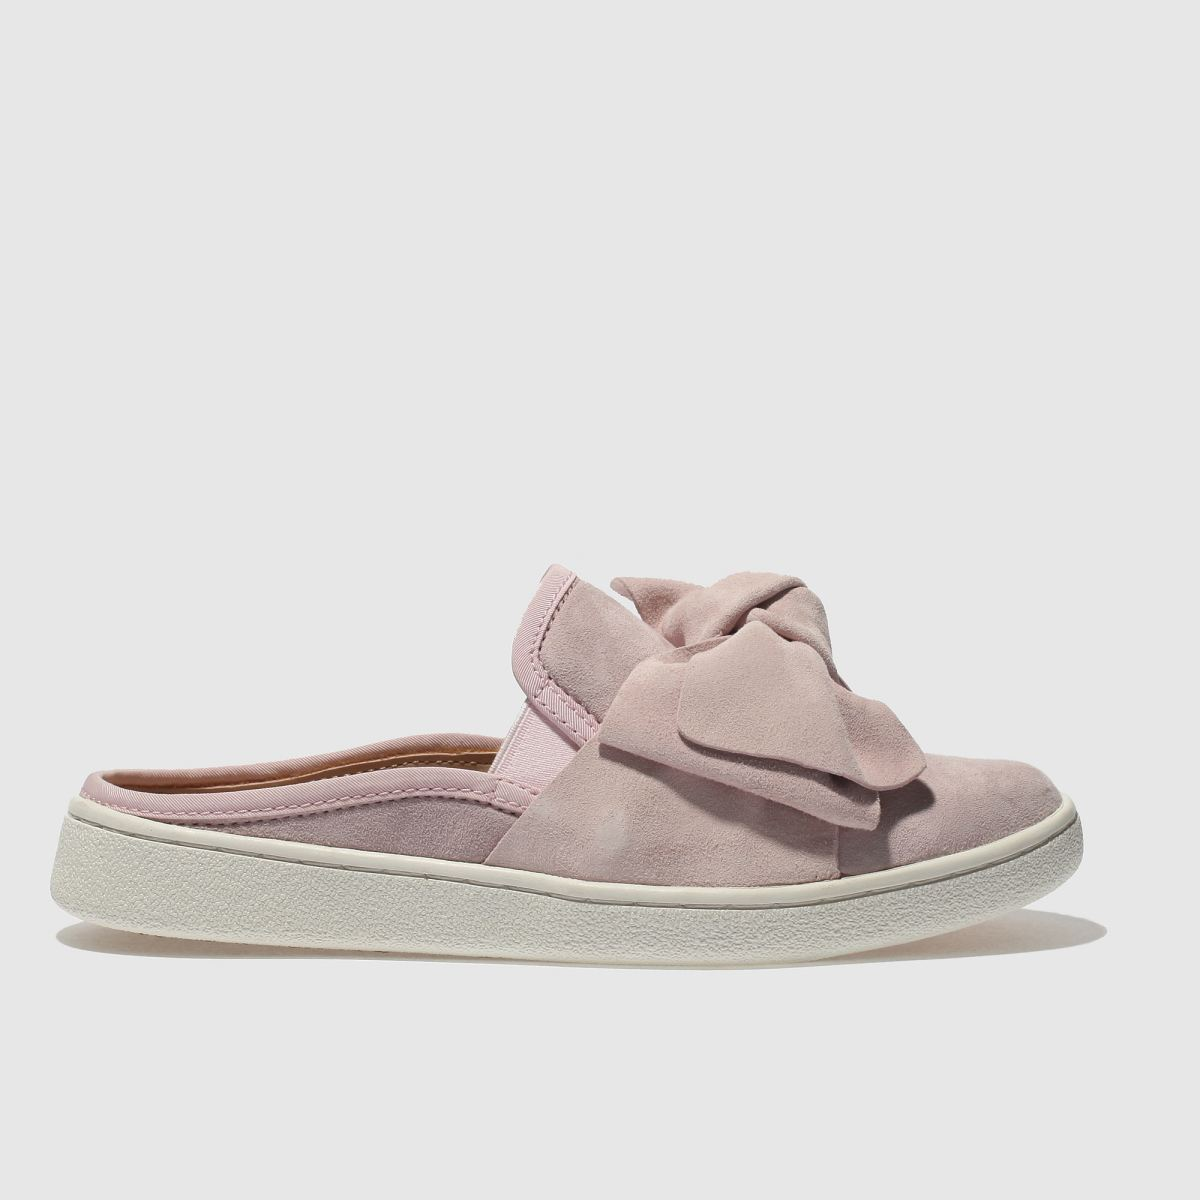 Ugg Pale Pink Luci Bow Flat Shoes